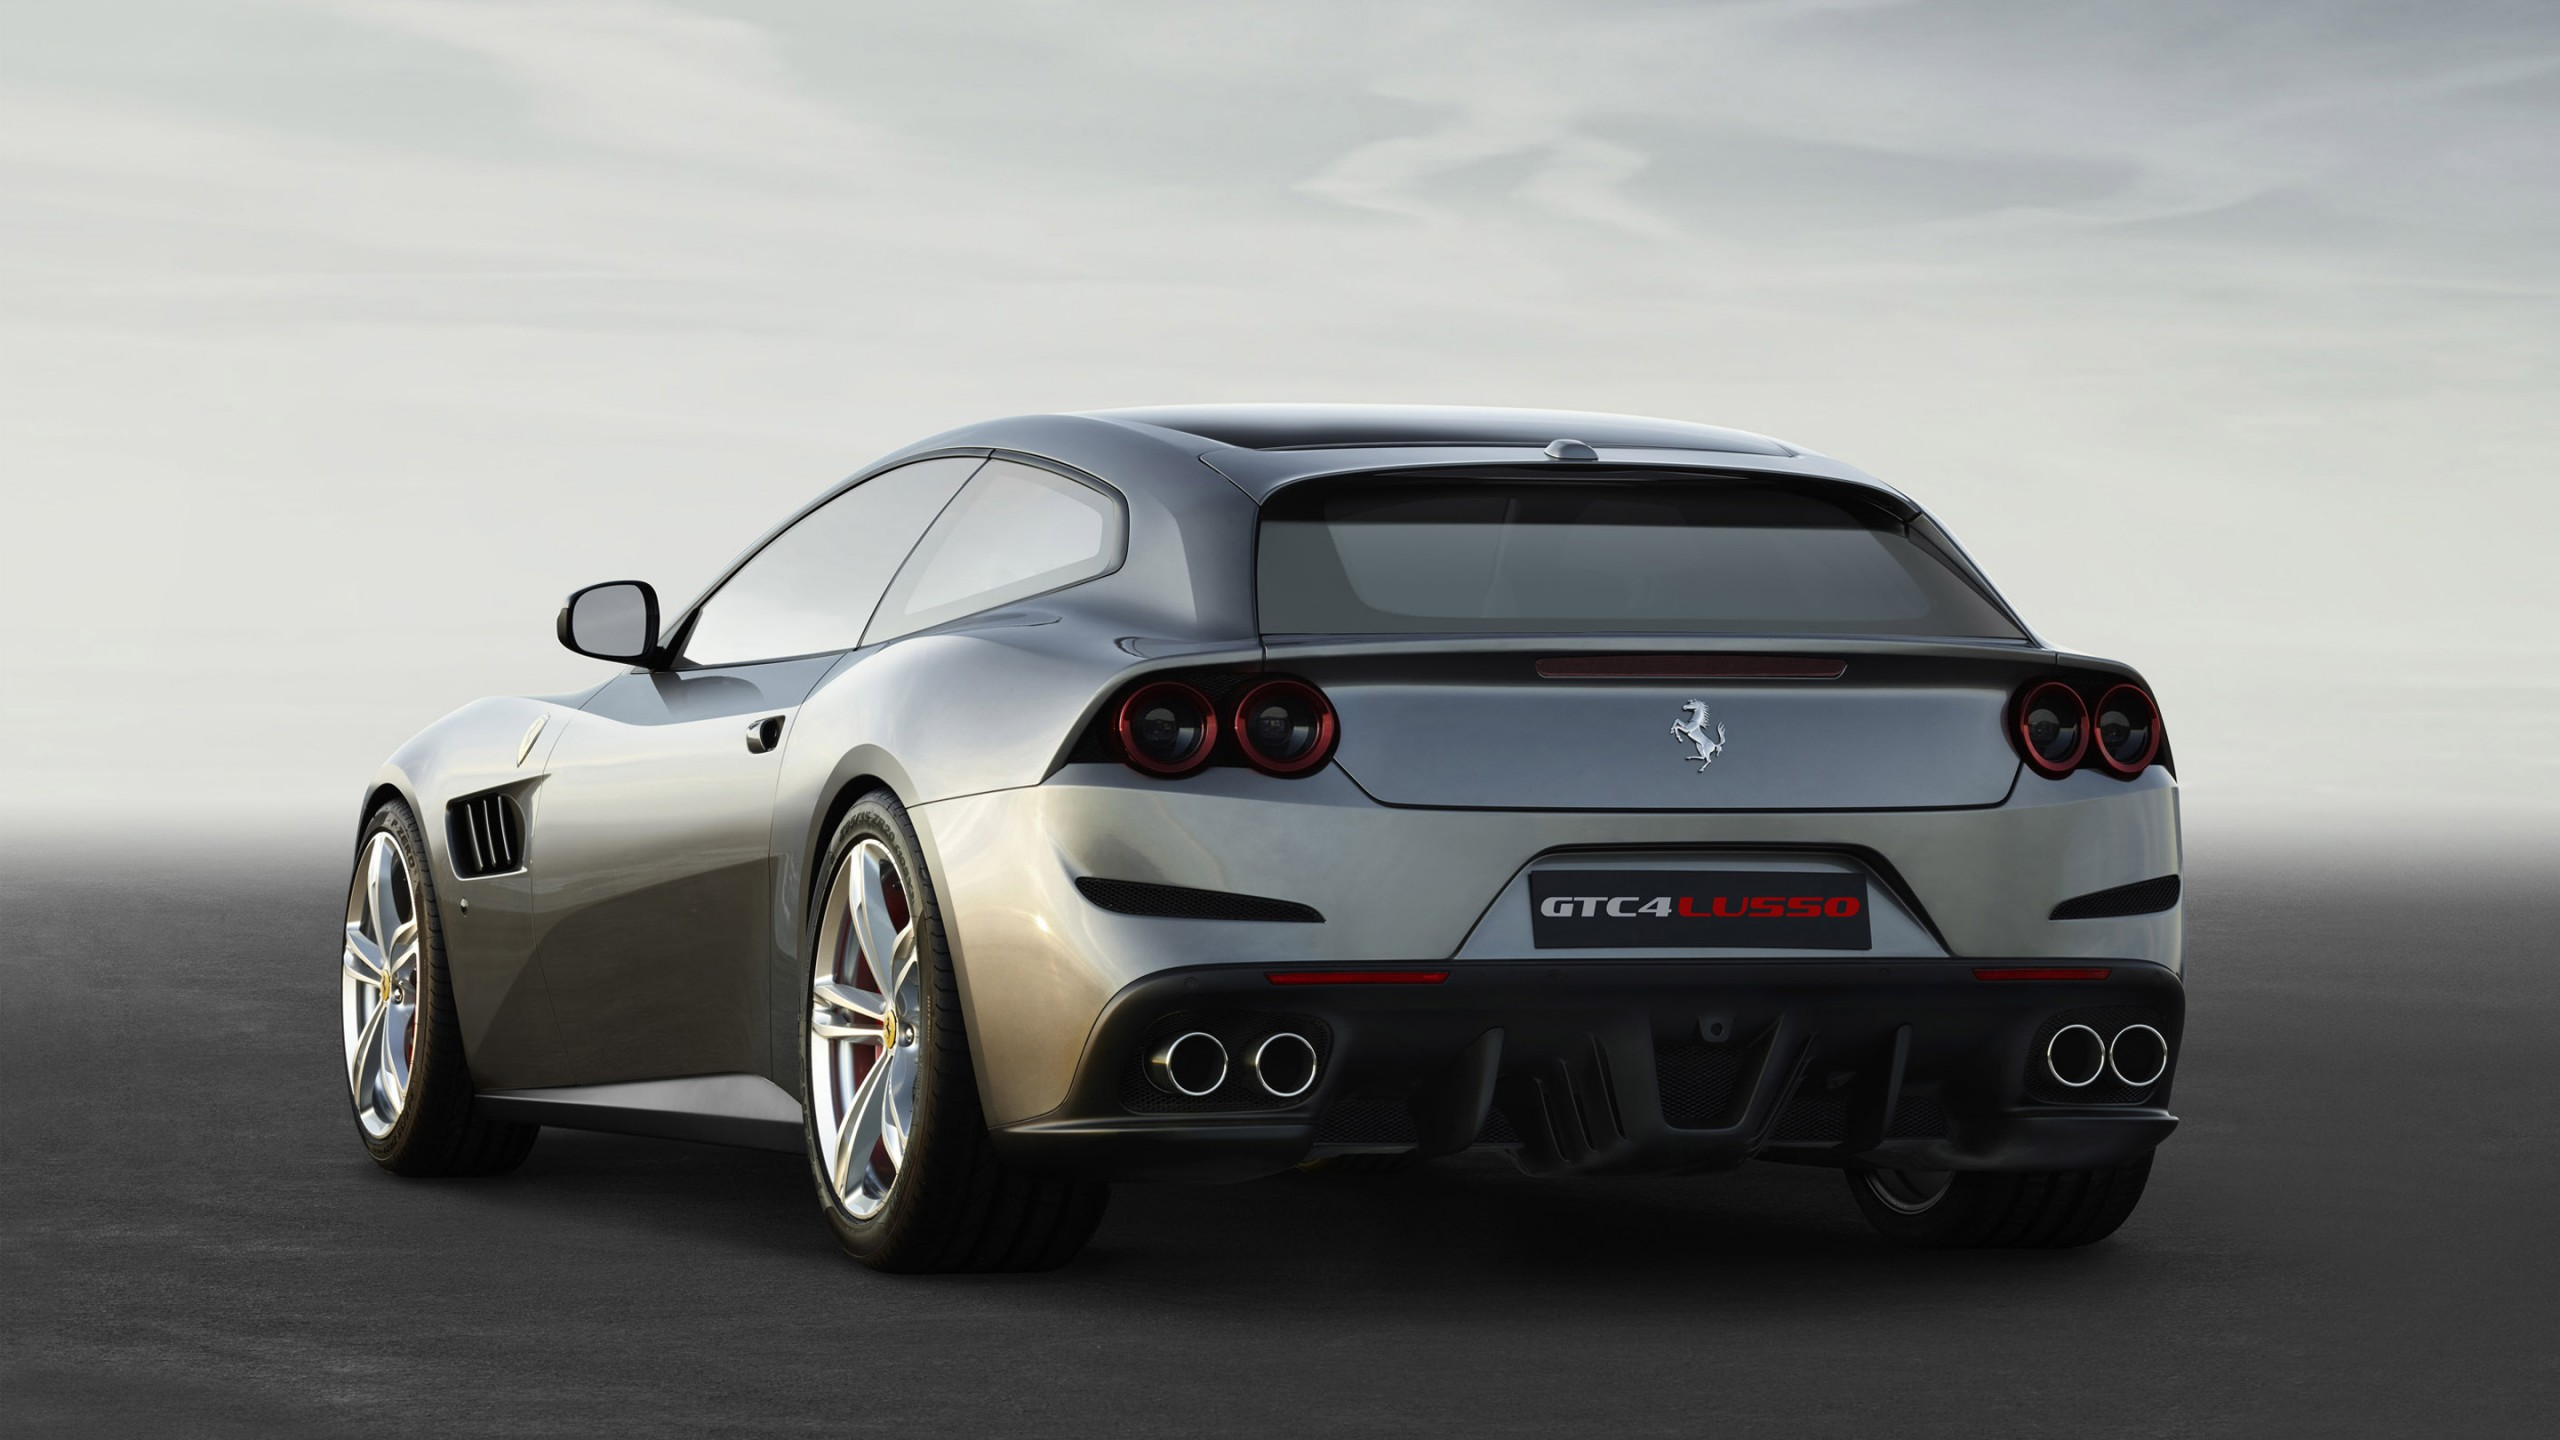 2017 Ferrari GTC4Lusso T 2 Wallpaper | HD Car Wallpapers | ID #7038